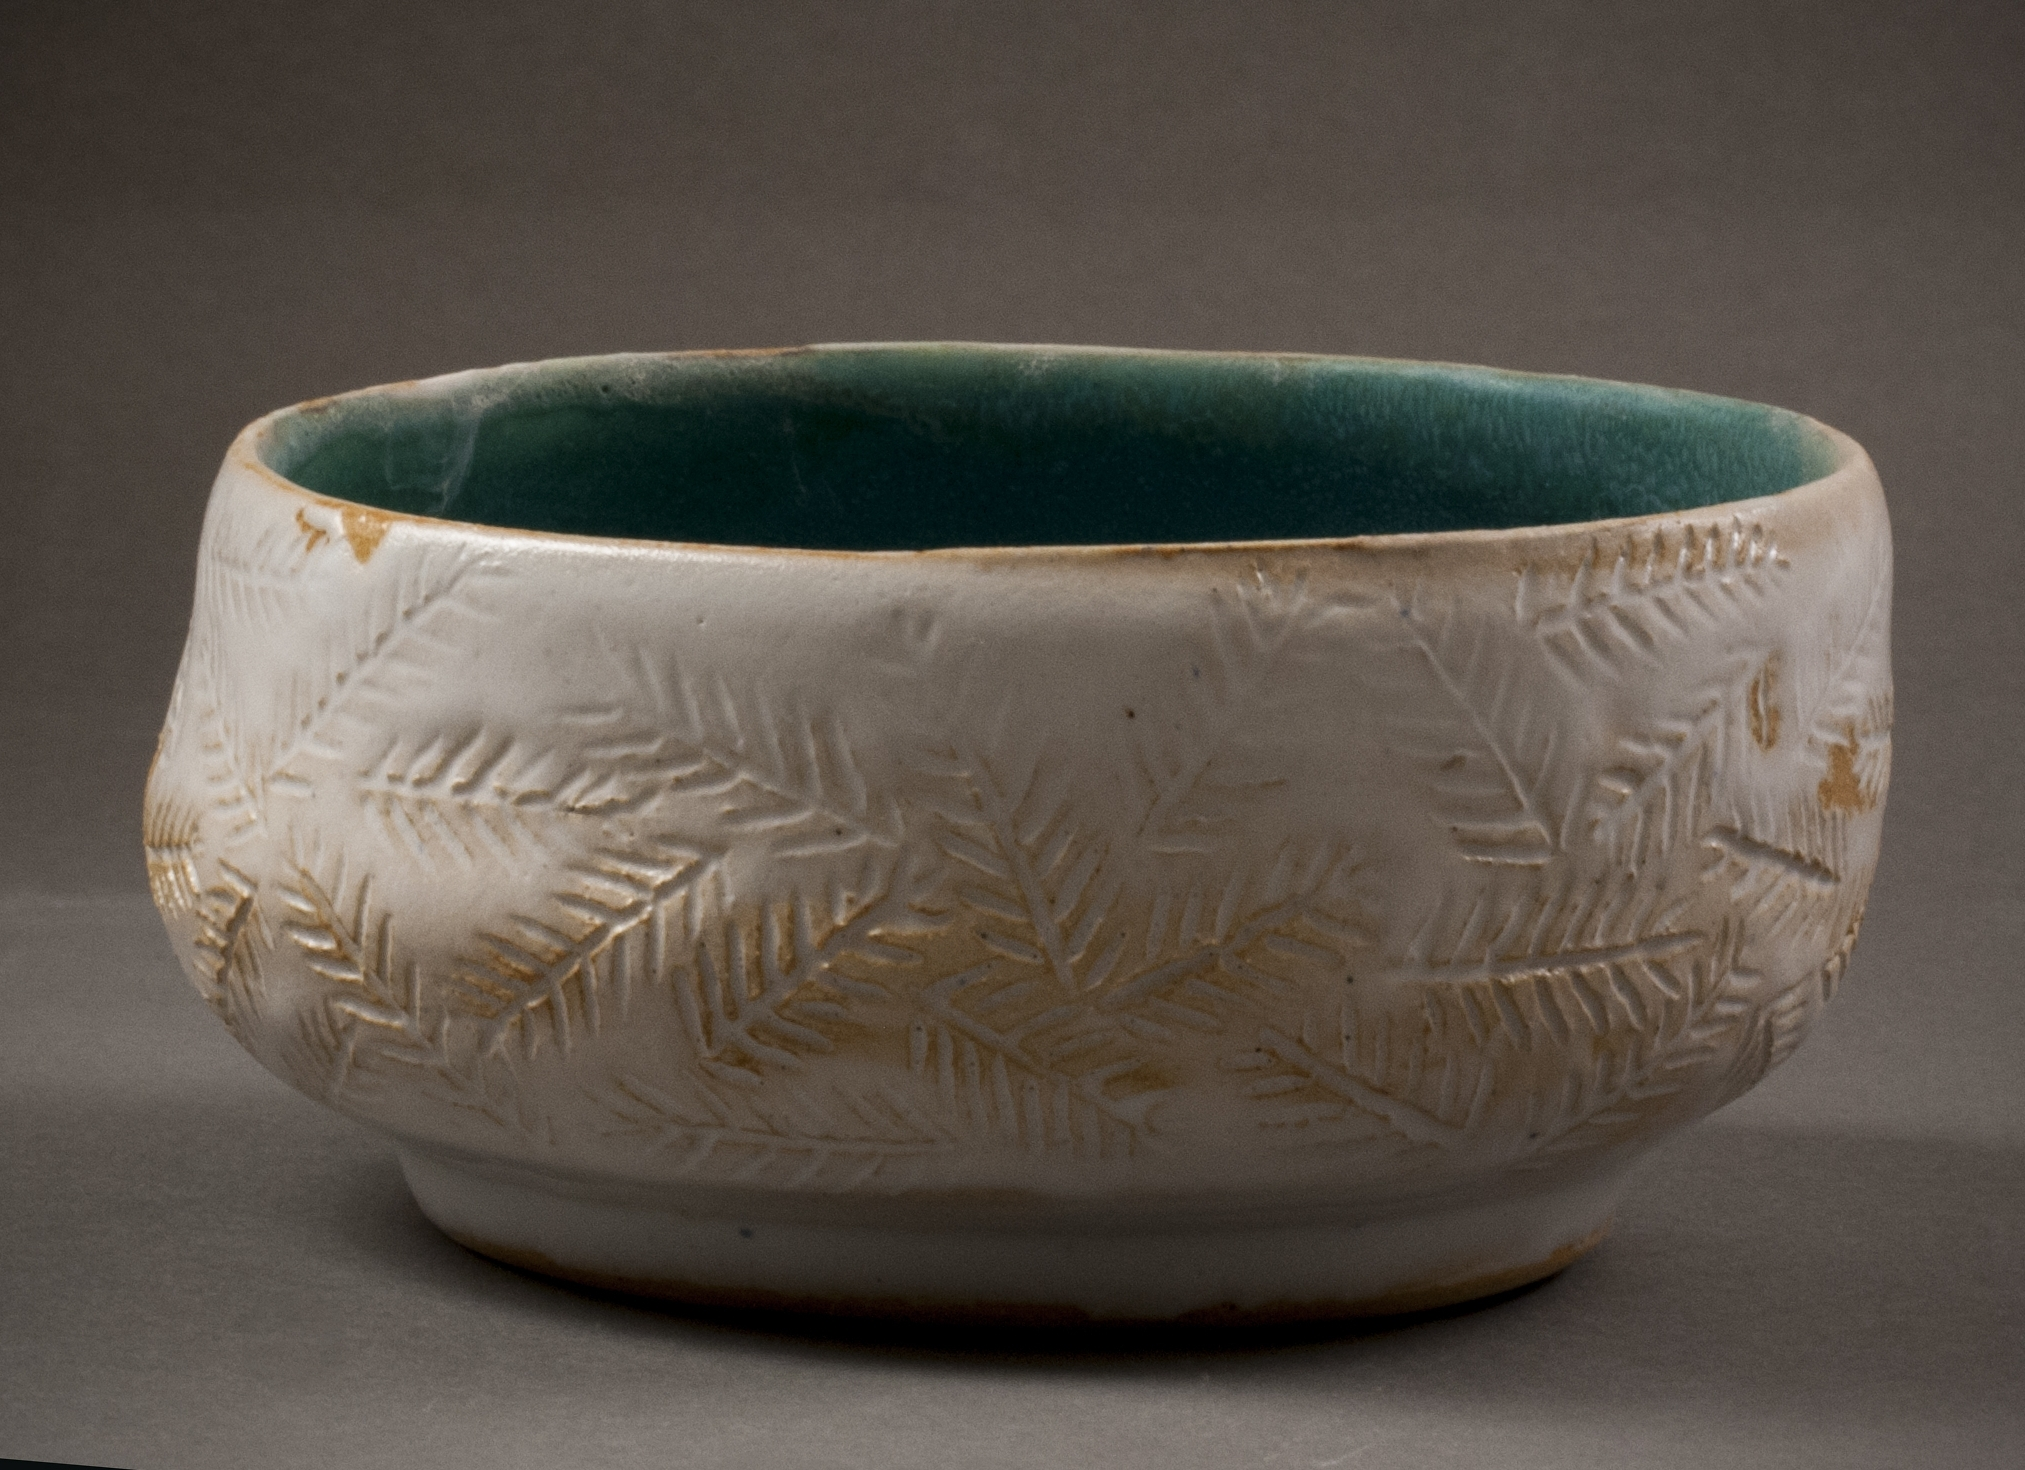 Carved bowl by Meghan G.